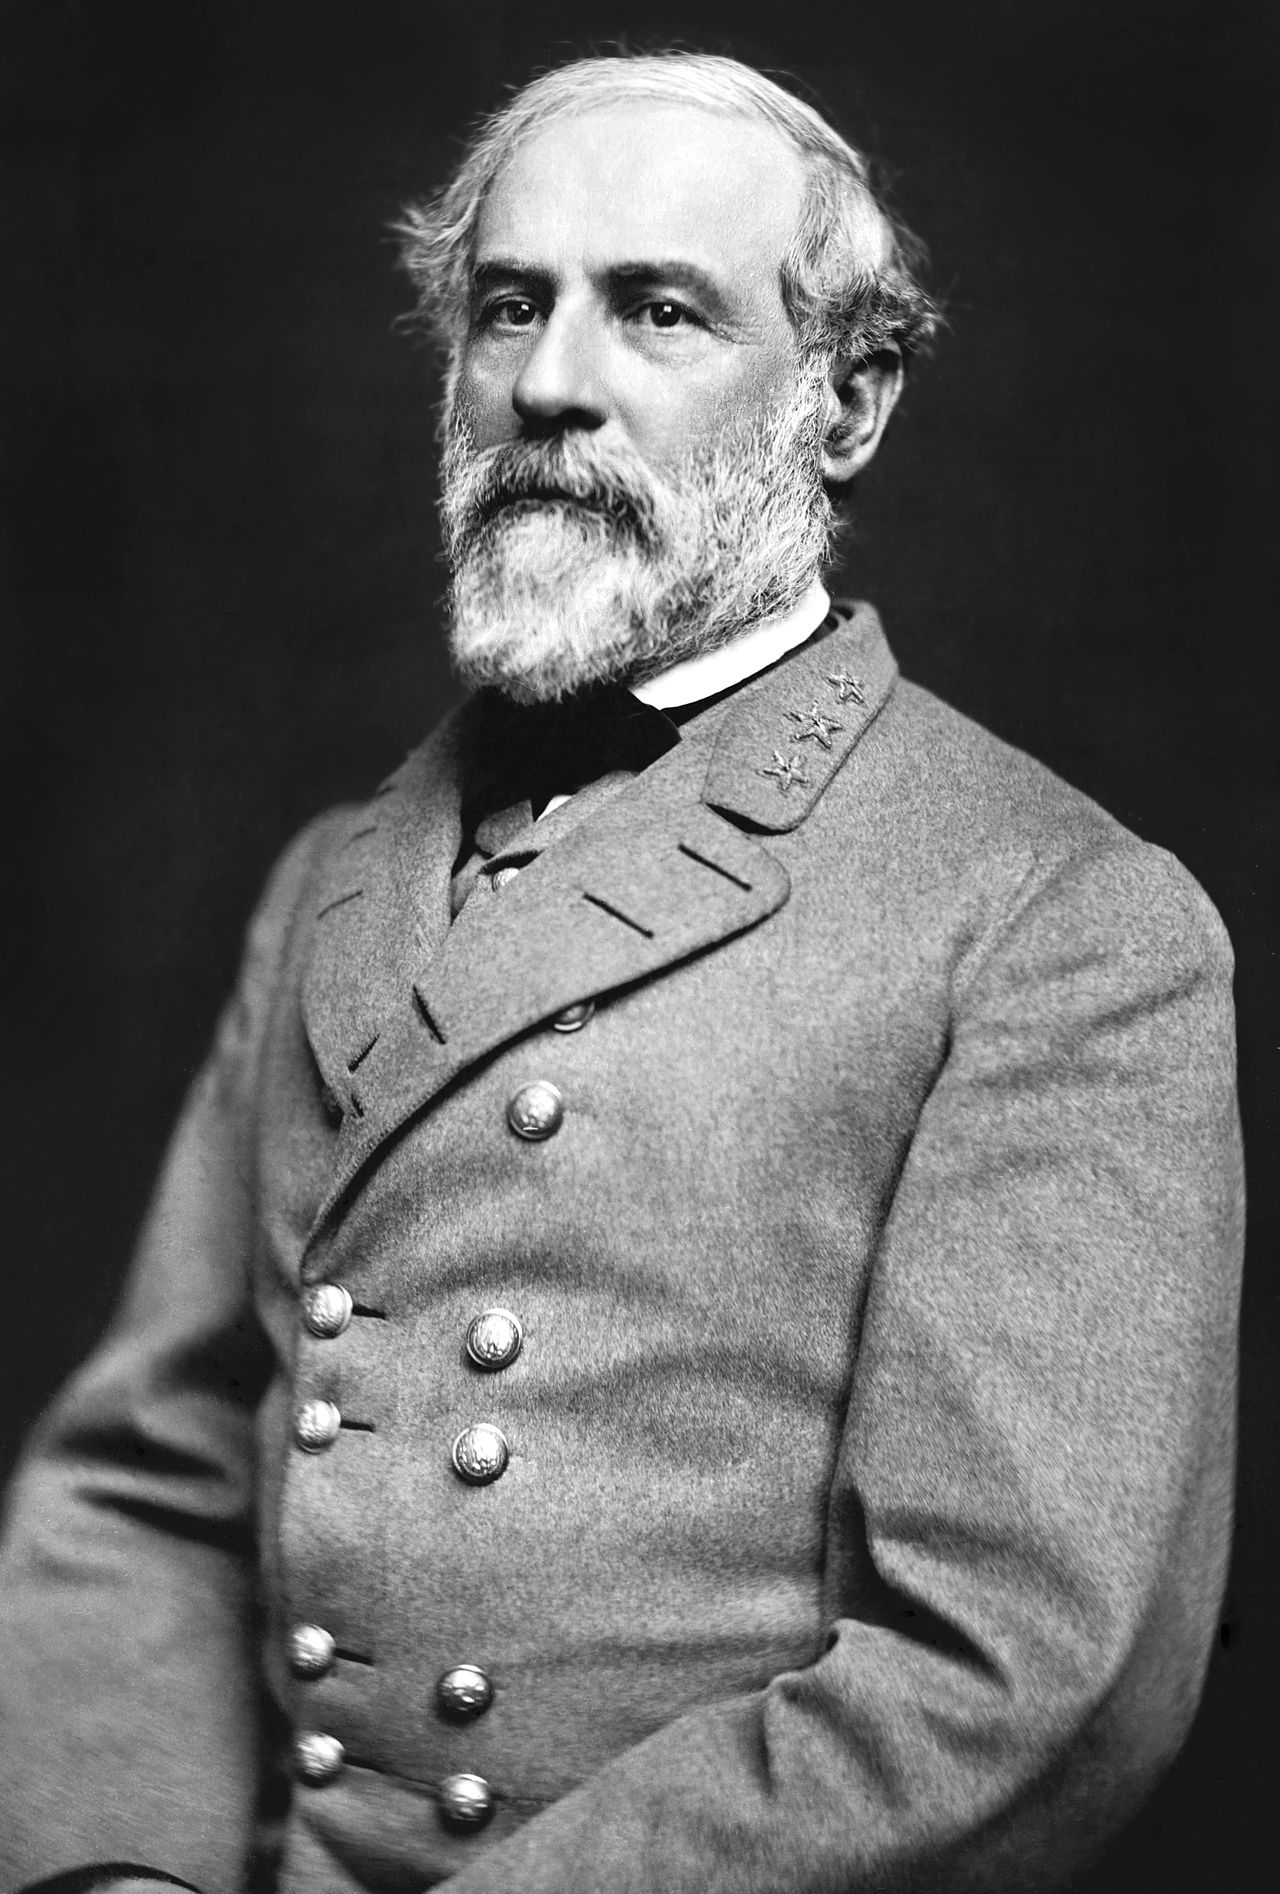 Arlington National Cemetery was owned by General Lee and confiscated for back taxes